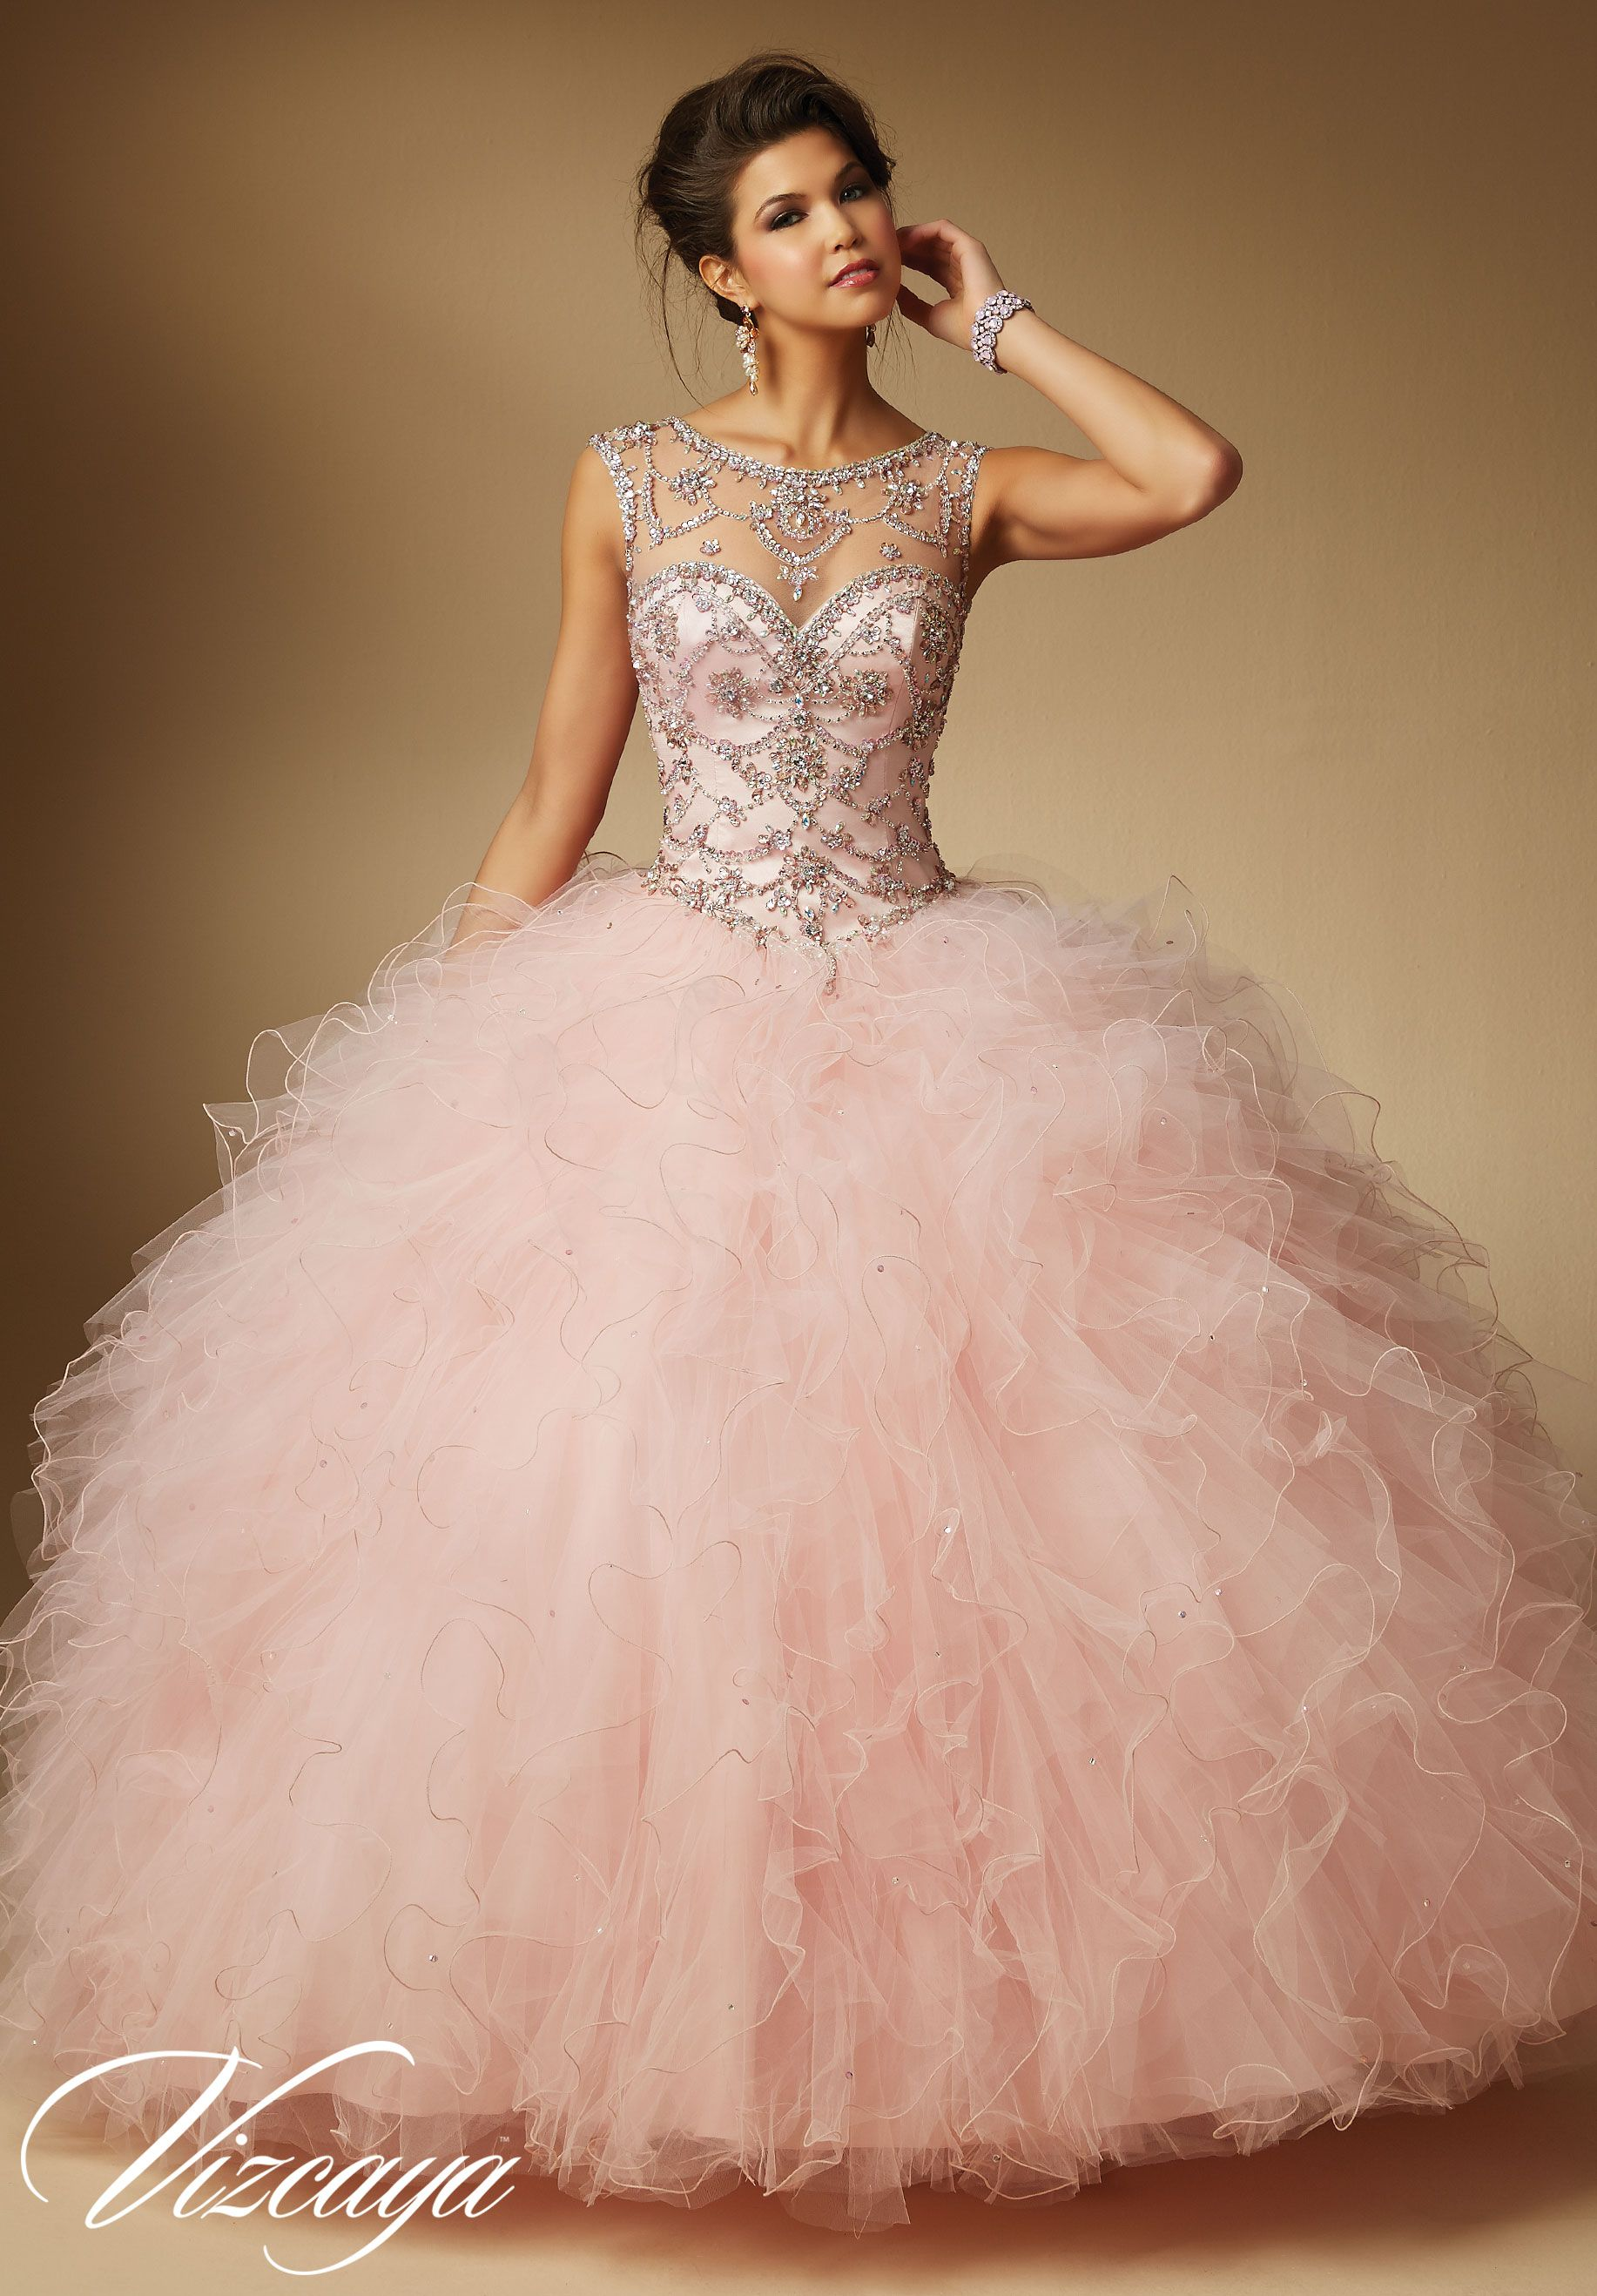 Quinceanera  BallGown in Pink with Jeweled Beading on Ruffled Tulle 2c75db9cc33b